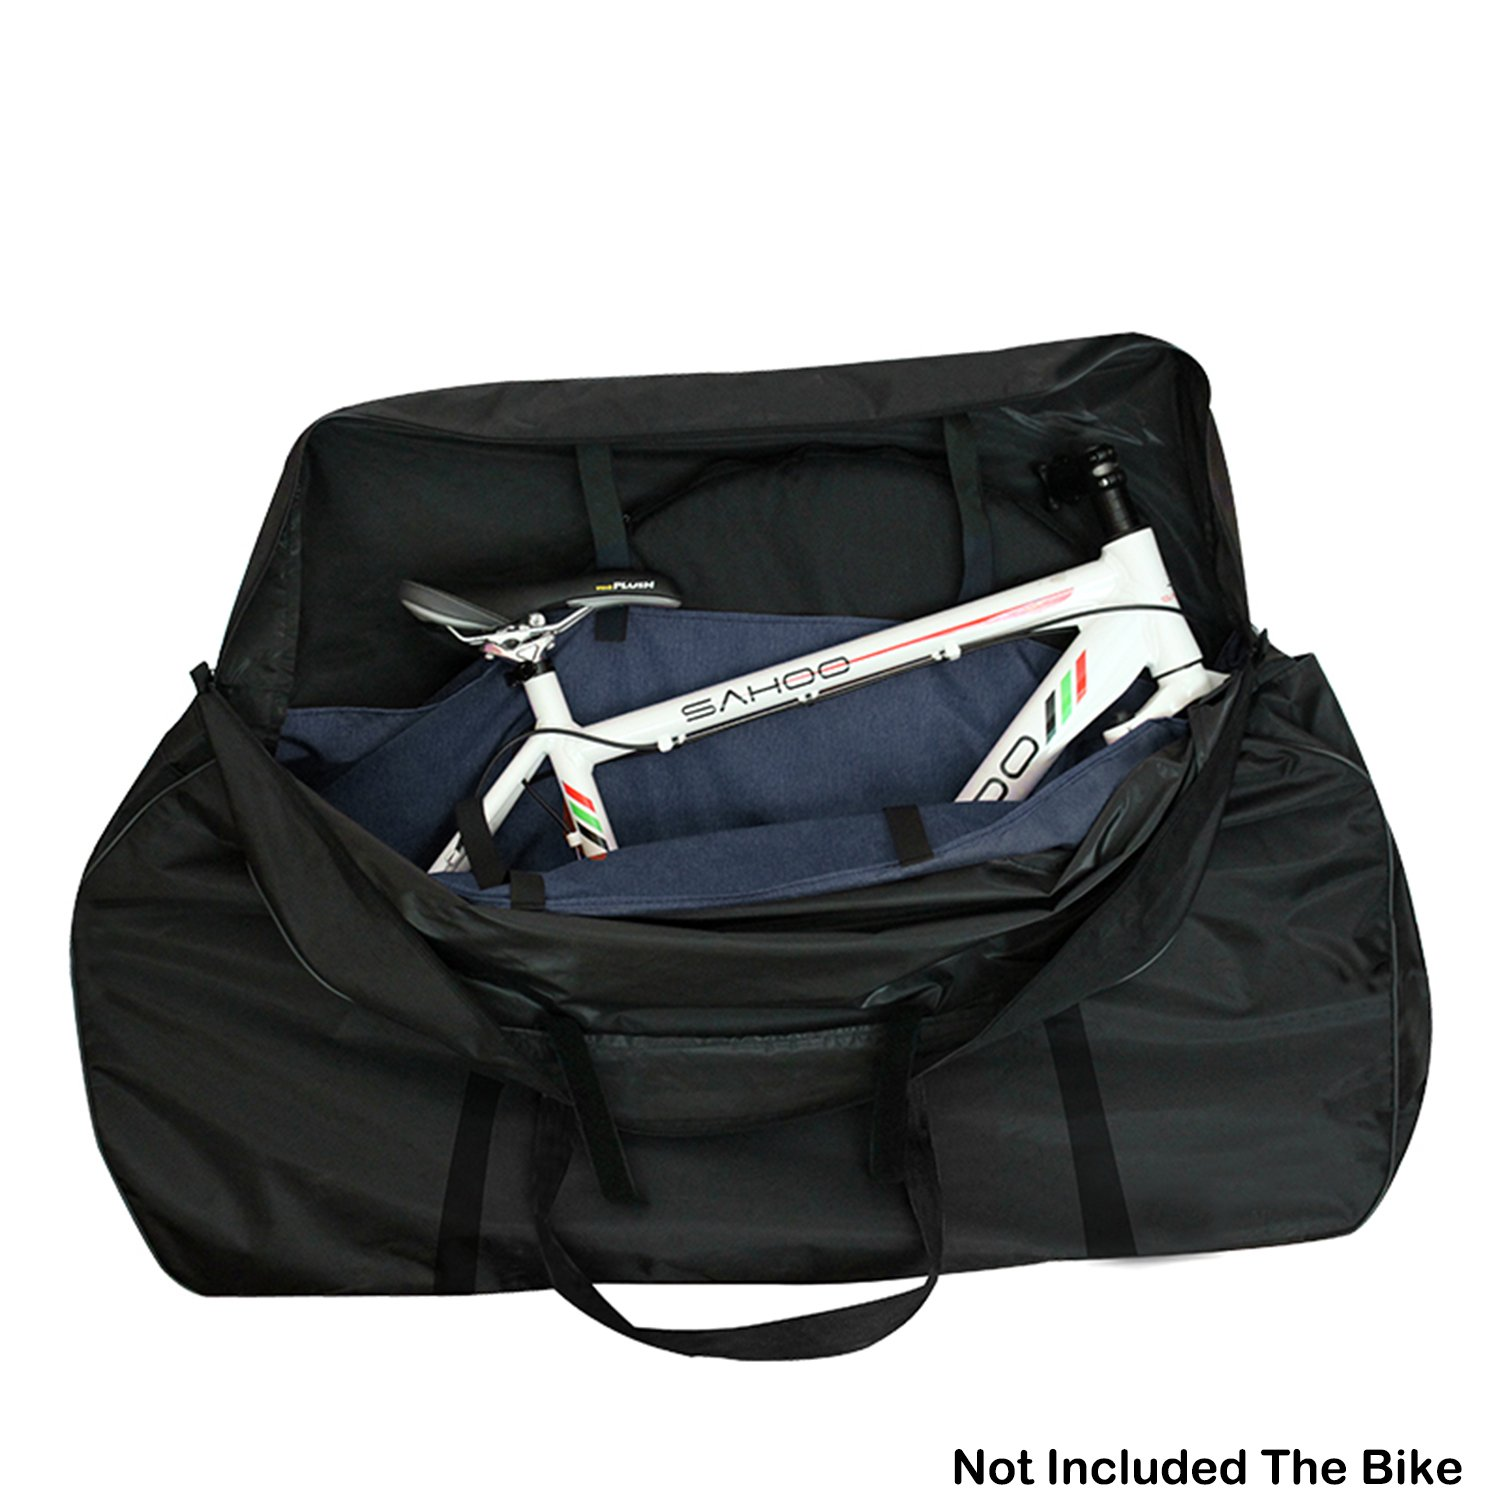 Topnaca Soft Mountain Road Bikes Travel Case Transport Bag Bicycle Carrying Case with Fork Protector for Outdoor Airplane